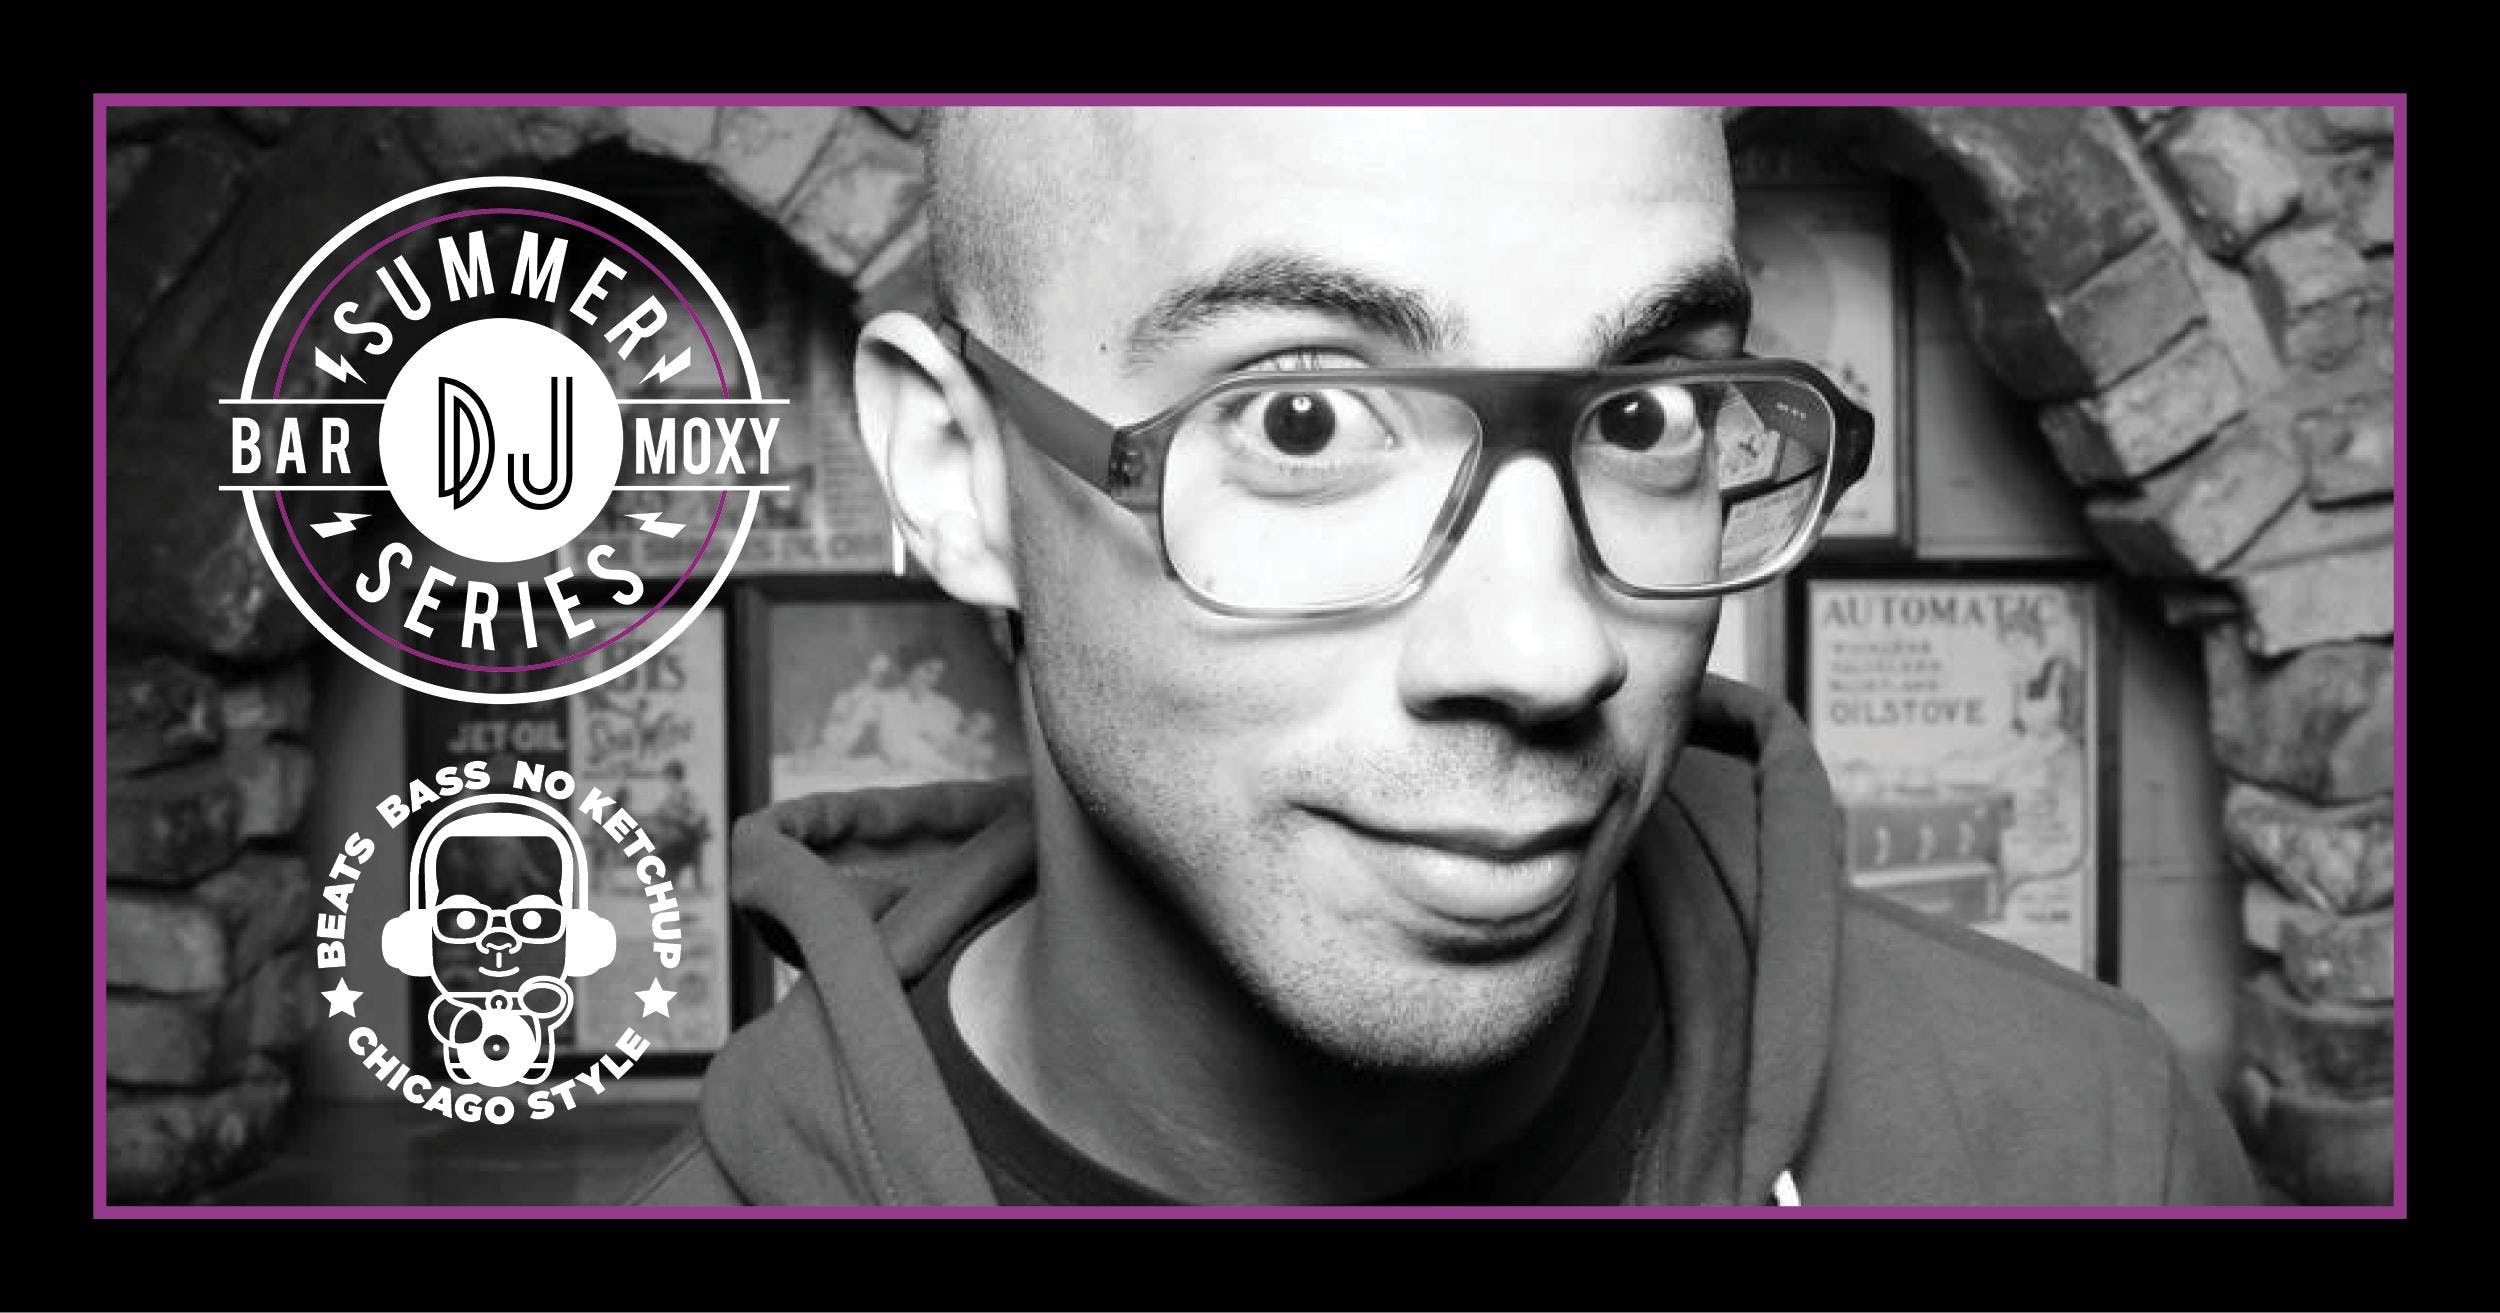 Bar Moxy Summer DJ Series: DJ Intel